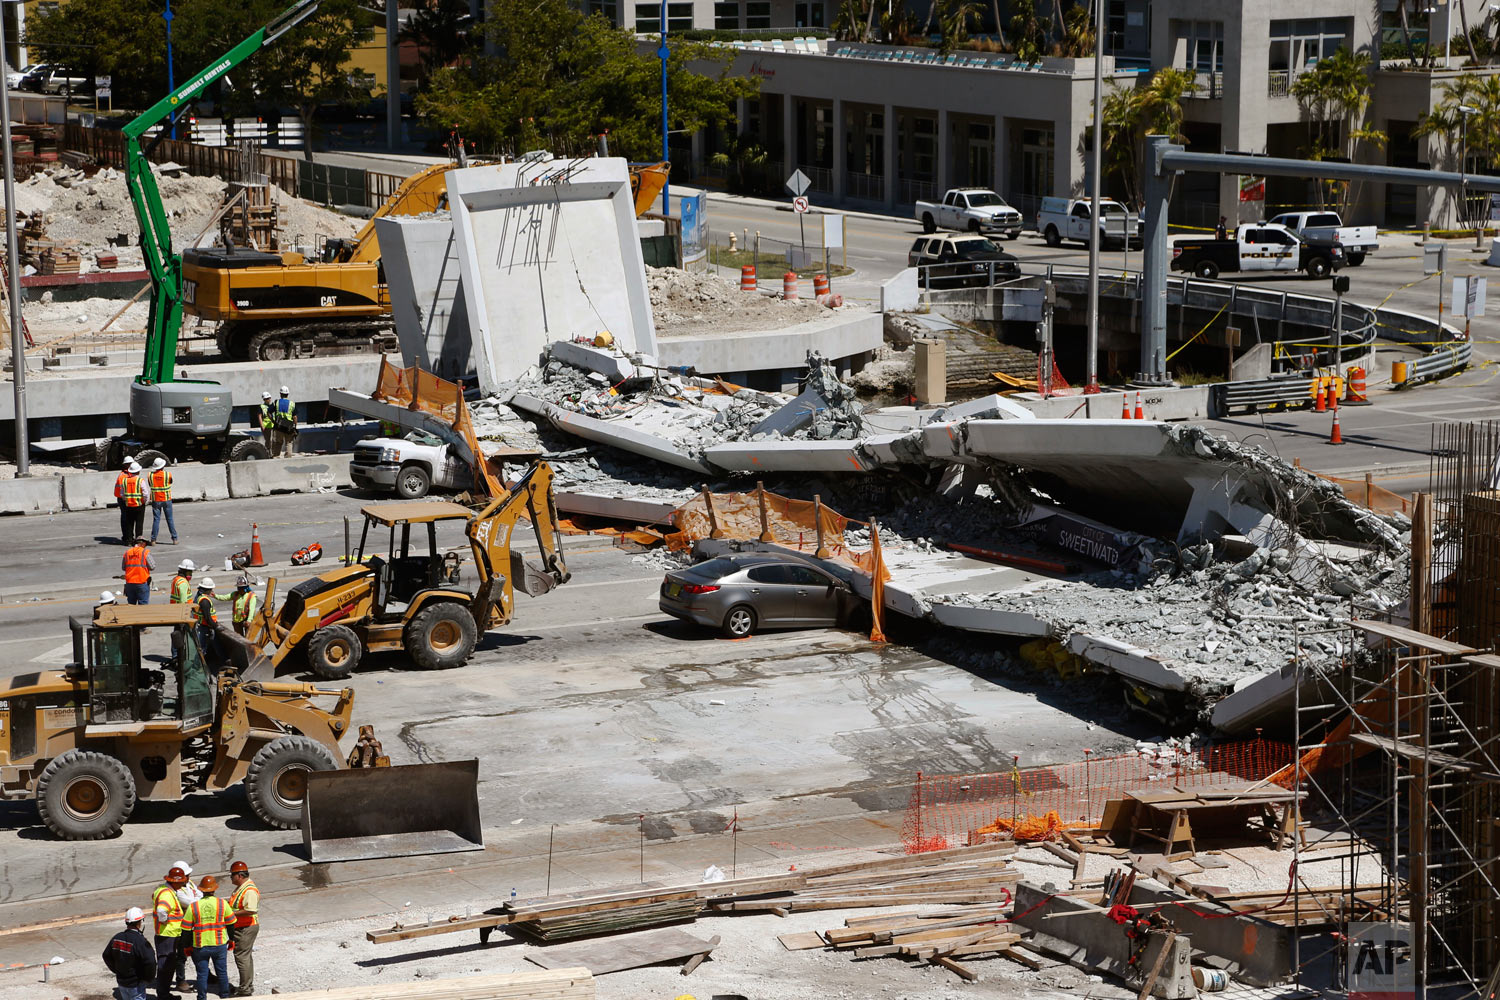 Crushed cars lie under a section of a collapsed pedestrian bridge near Florida International University in the Miami area on Friday, March 16, 2018. The bridge that was under construction collapsed onto a busy highway Thursday afternoon, crushing vehicles beneath massive slabs of concrete and steel, killing and injuring several people, authorities said. (AP Photo/Wilfredo Lee)